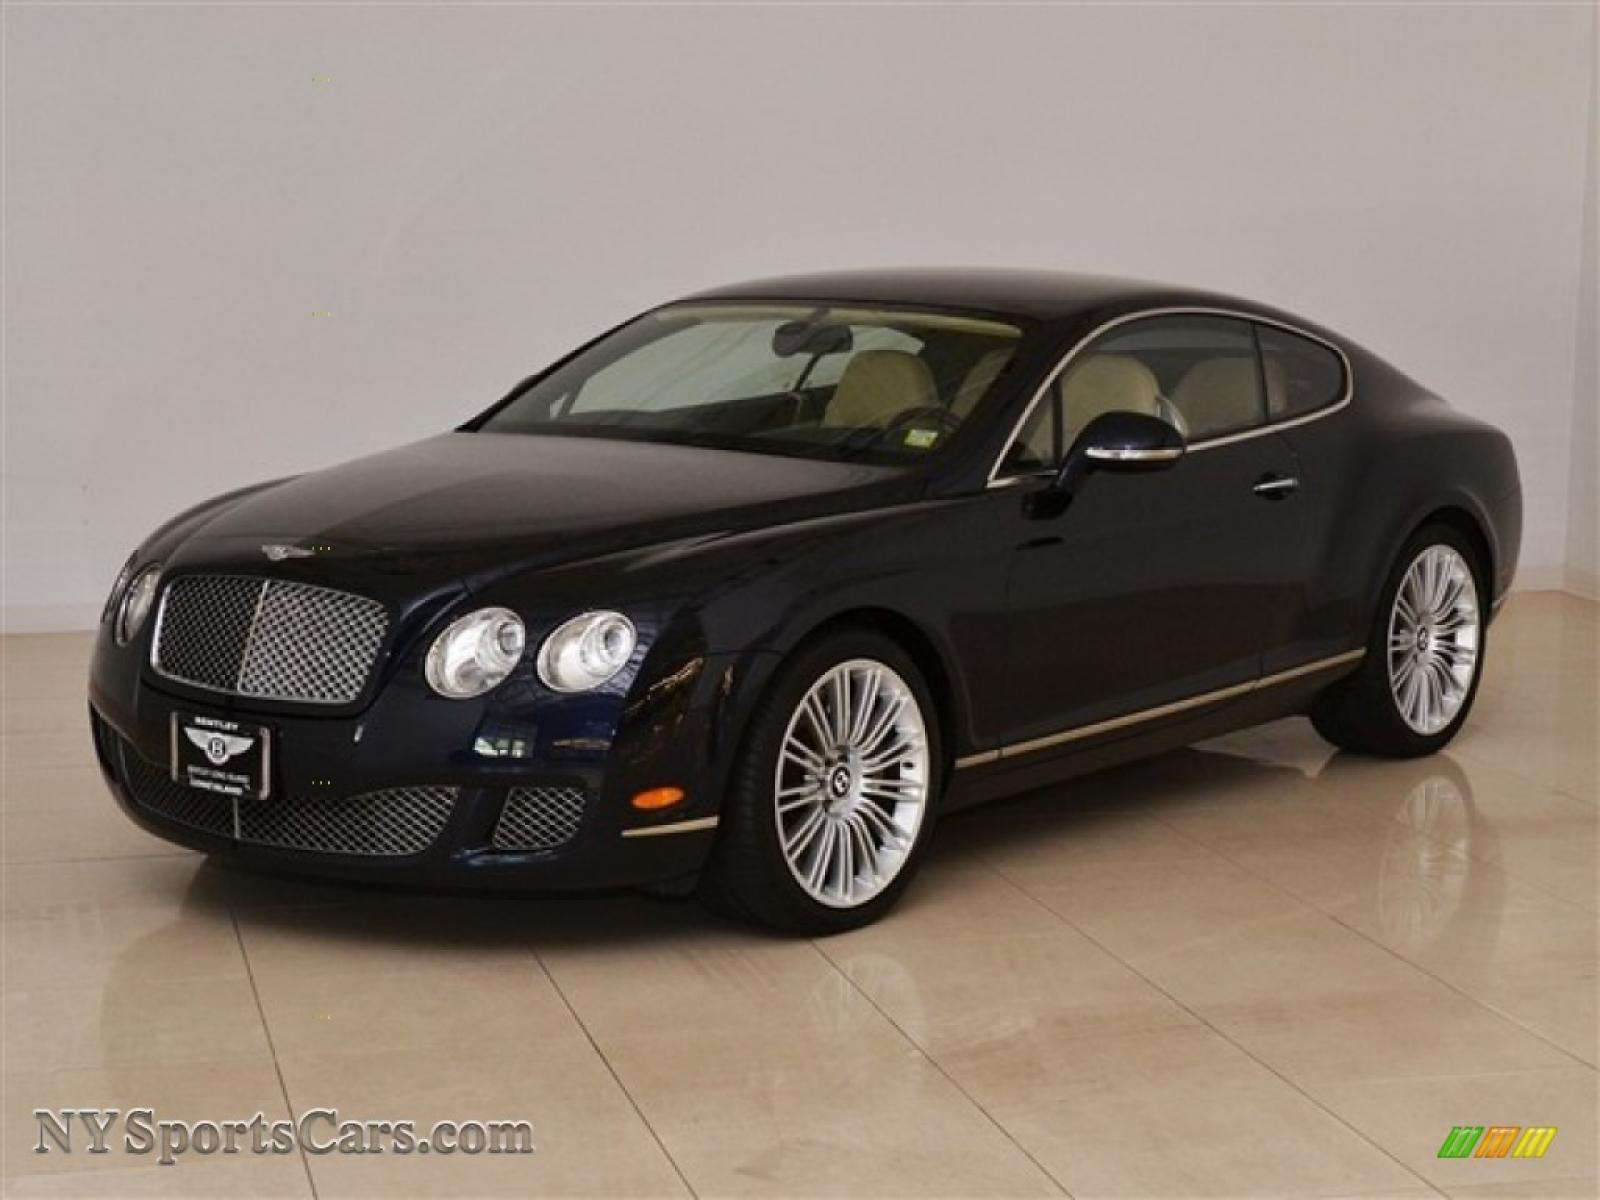 2010 bentley continental gt speed information and photos zombiedrive. Black Bedroom Furniture Sets. Home Design Ideas